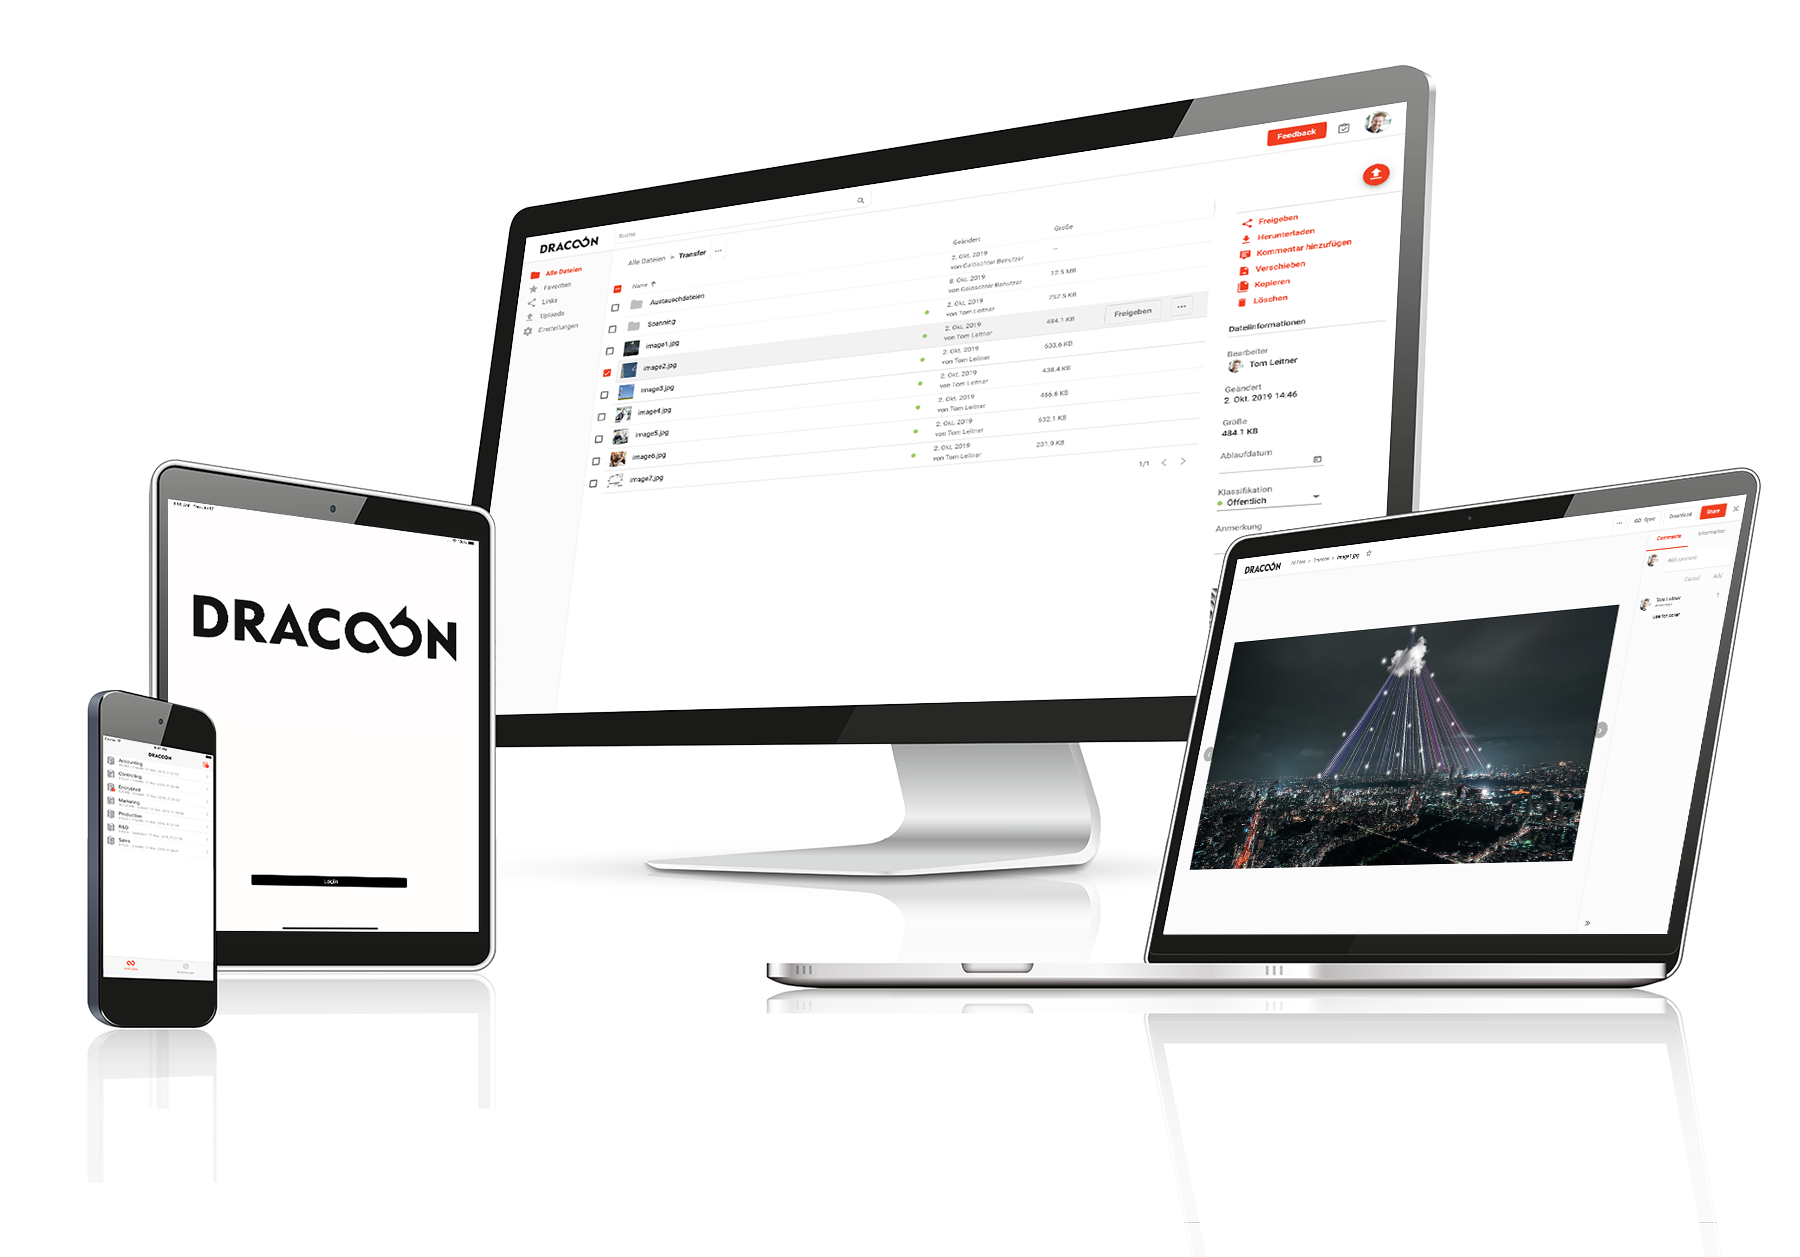 file-service-dracoon-devices